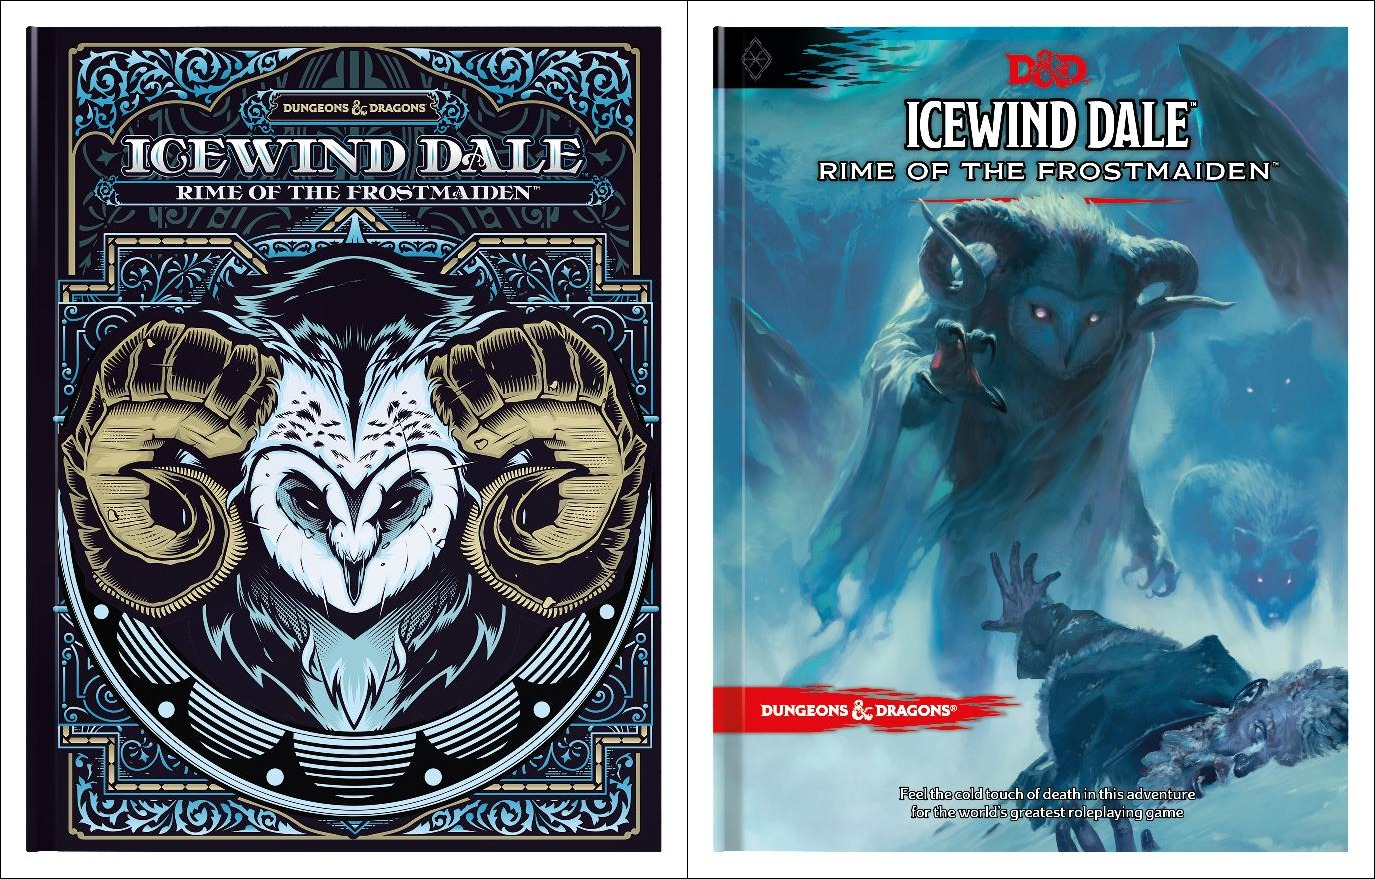 5E D&D Icewind Dale Rime of the Frostmaiden magic items